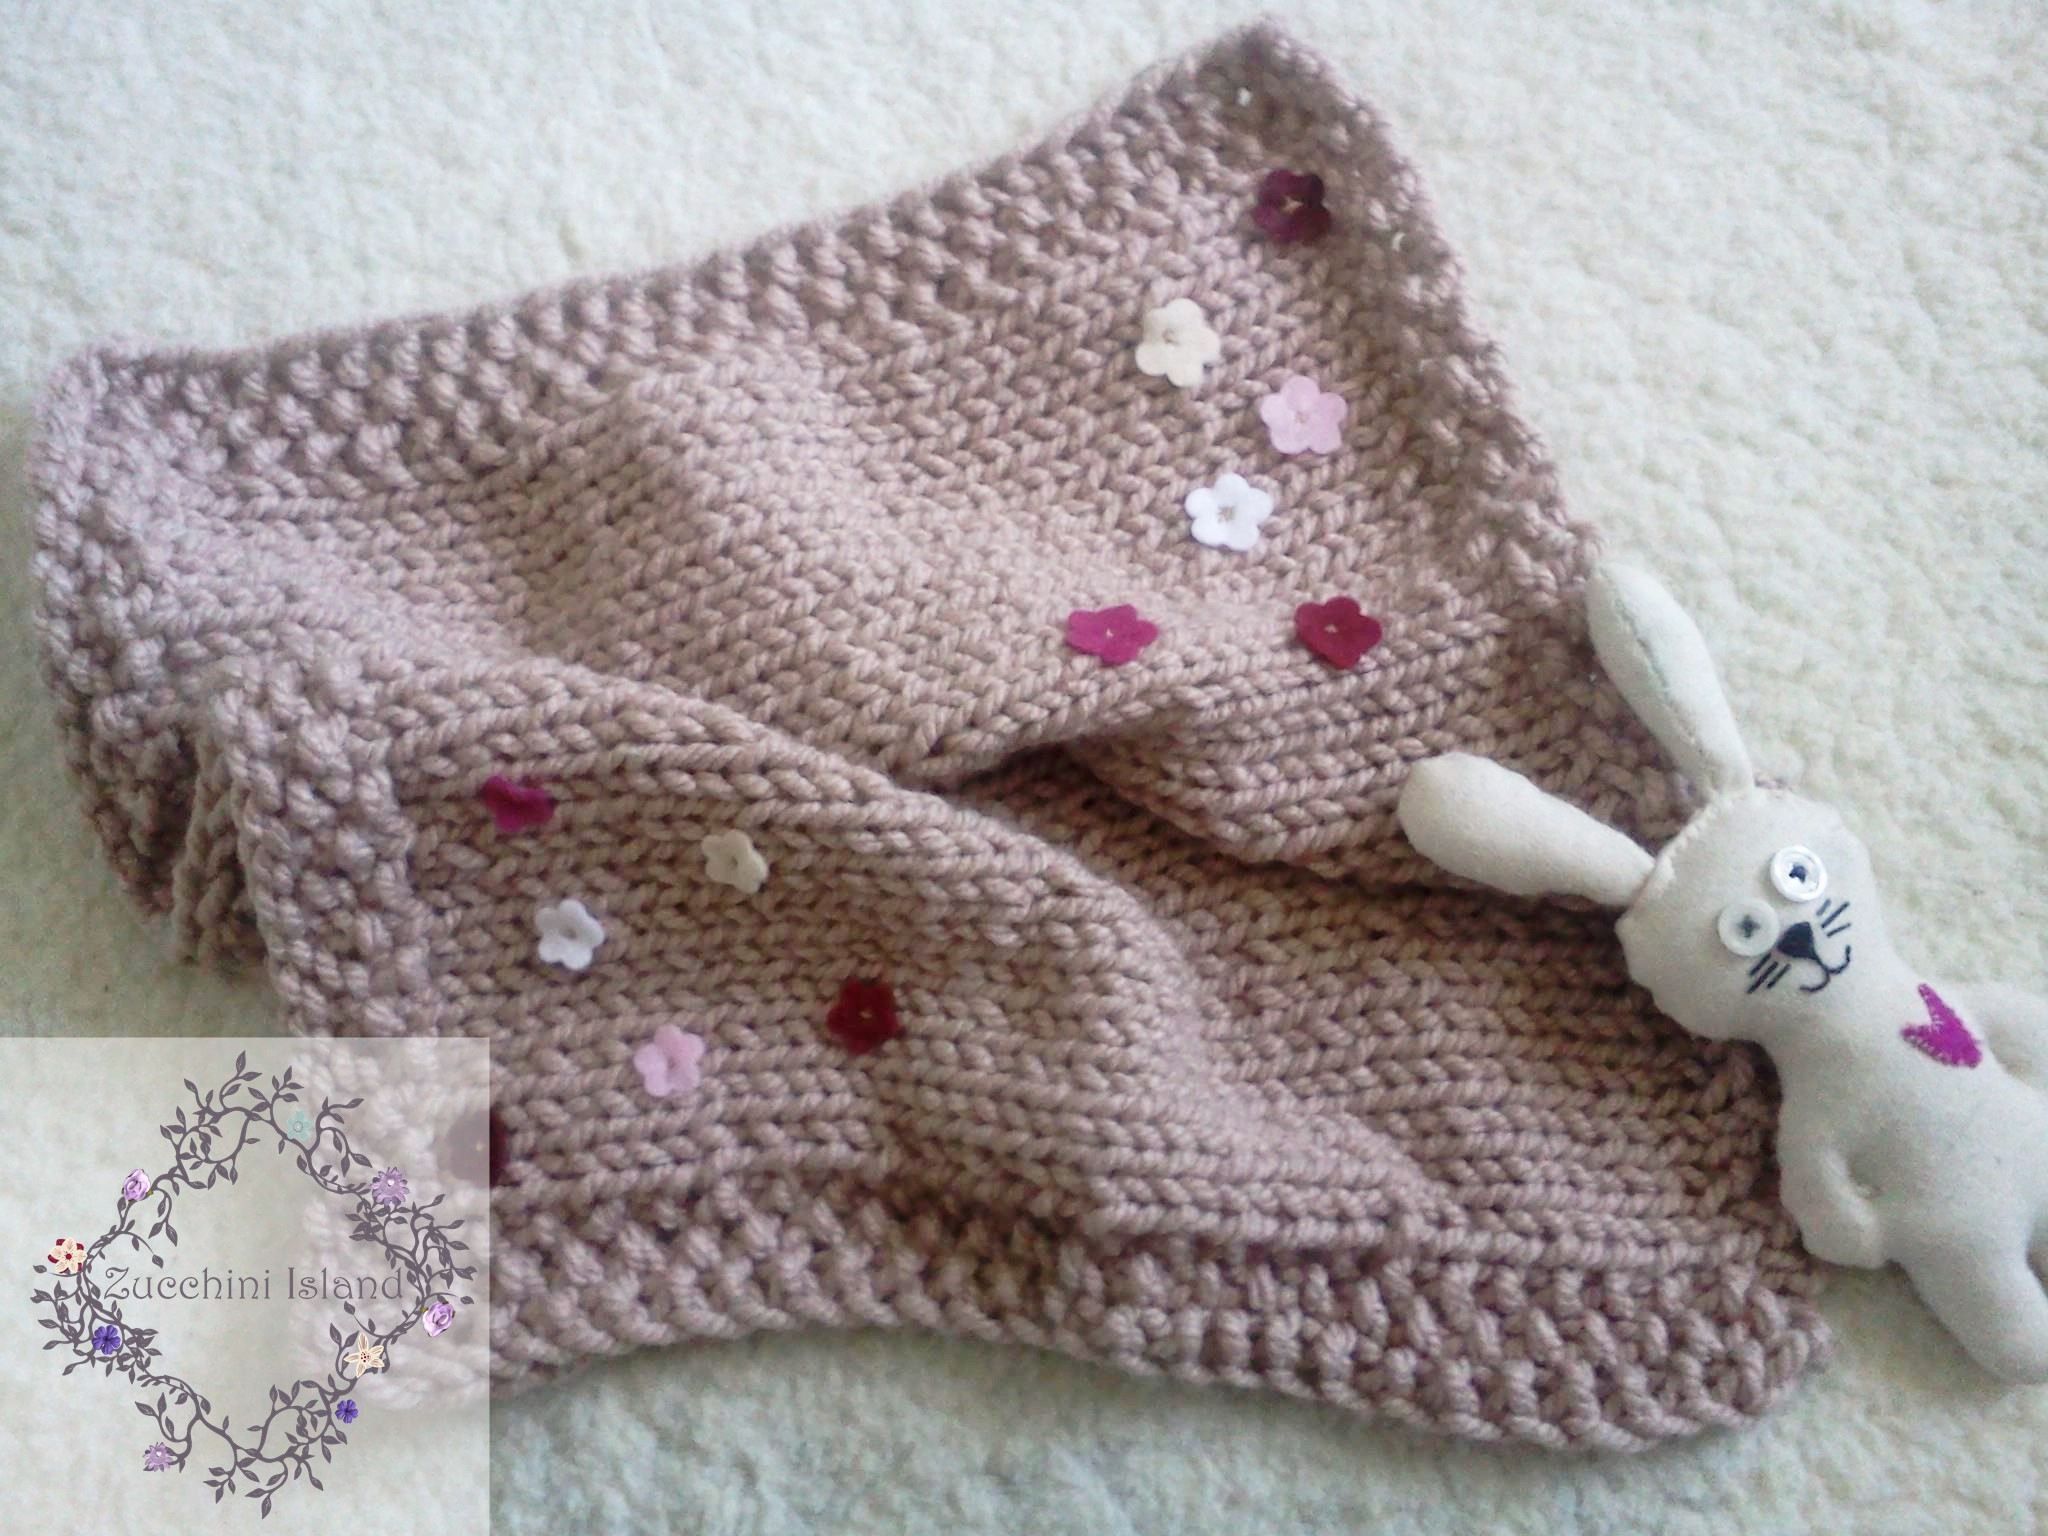 Inspirational Free Knitting Pattern for A Simple Chunky Baby Blanket Free Chunky Knitting Patterns Of Brilliant 46 Ideas Free Chunky Knitting Patterns